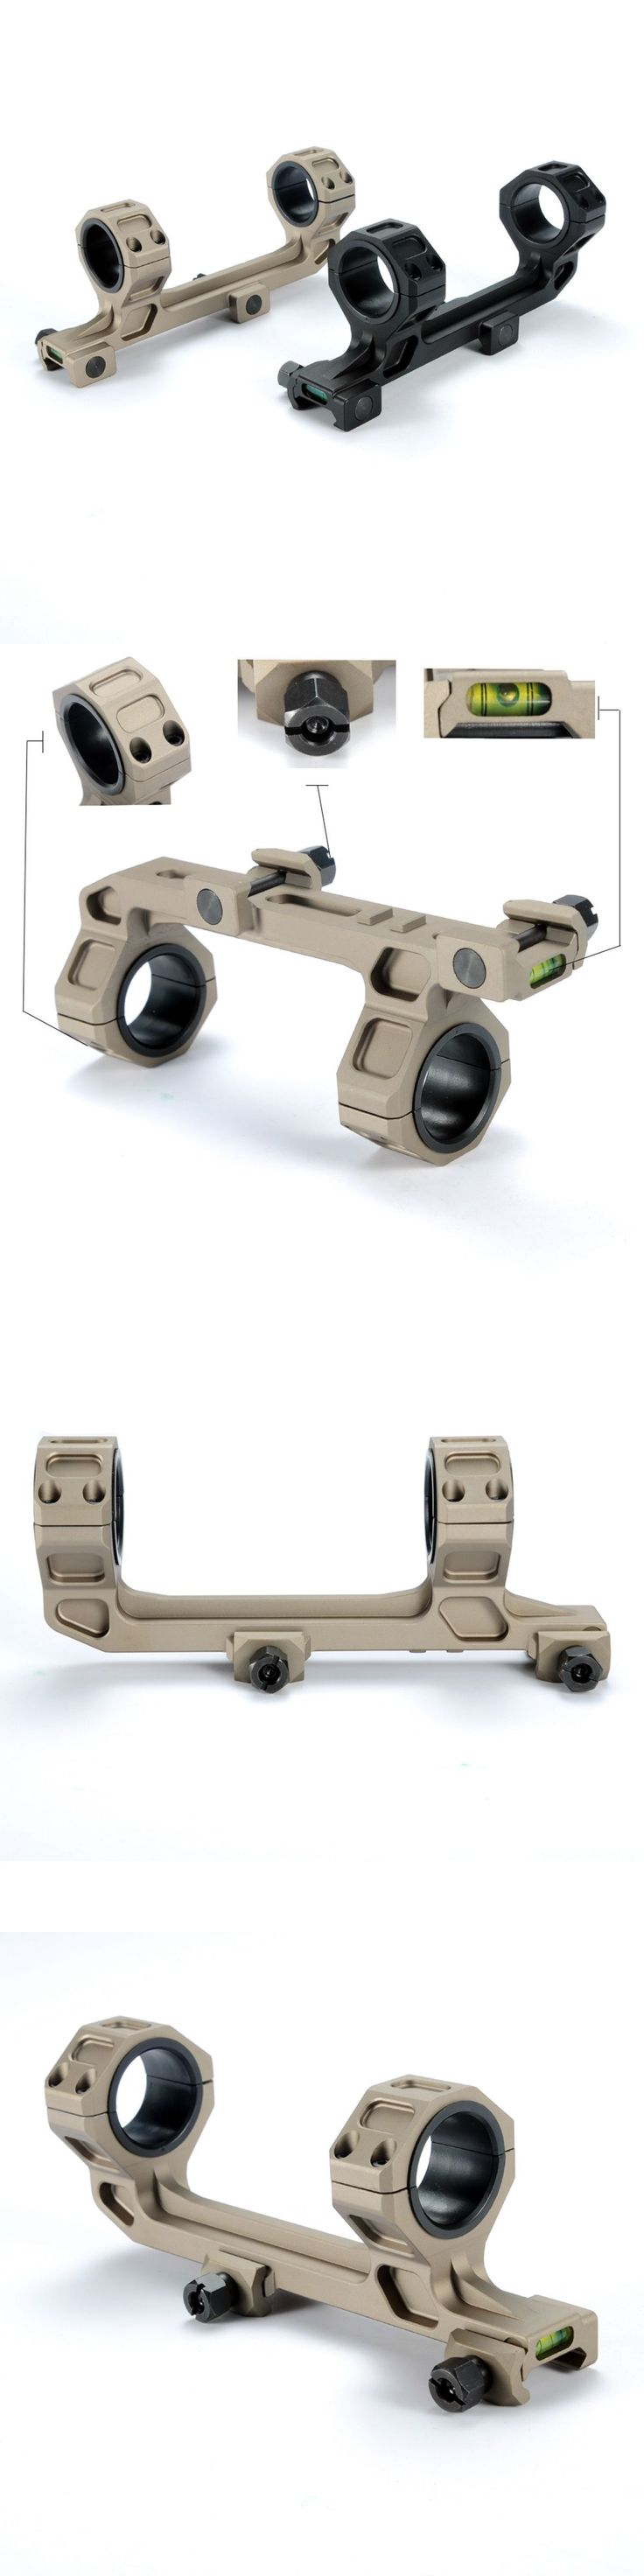 Scope Mounts and Accessories 52510: ( Gbo ) Scope Mount 30Mm / 1 Inch Rings One Piece W Bubble Level Picatinny Rails BUY IT NOW ONLY: $34.95